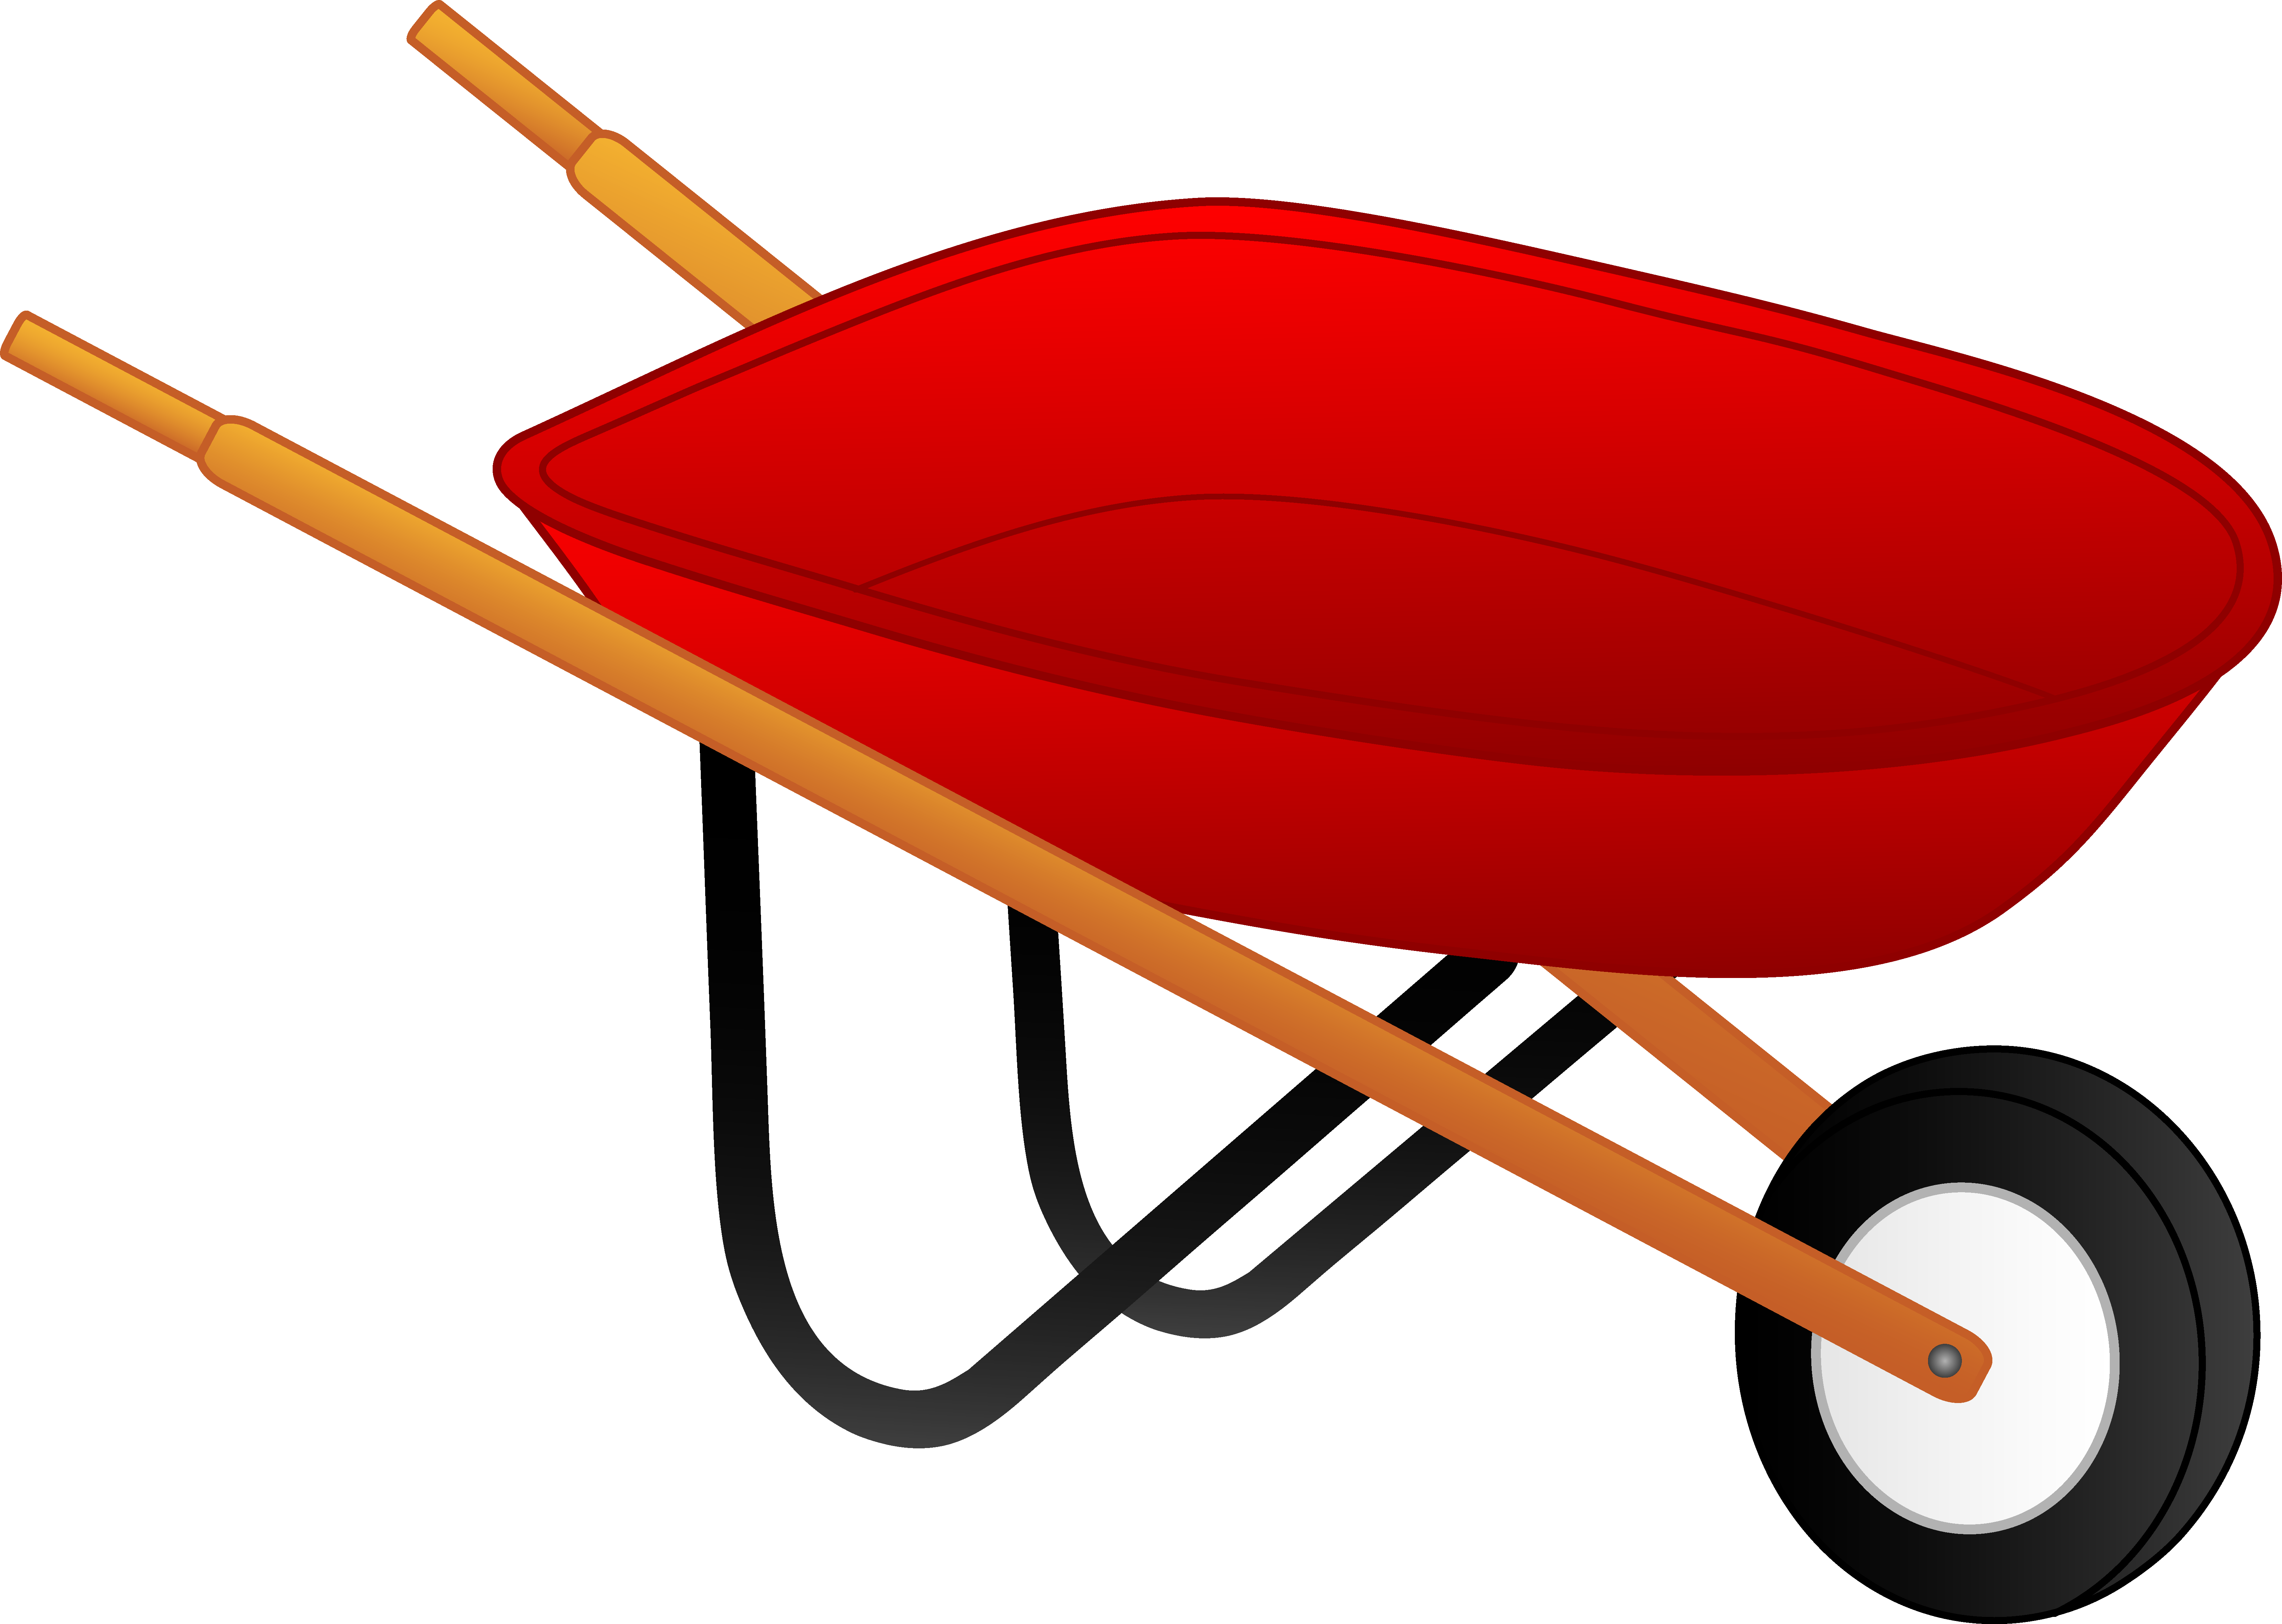 png freeuse library In person with wheelbarrow. Wheel barrow clipart